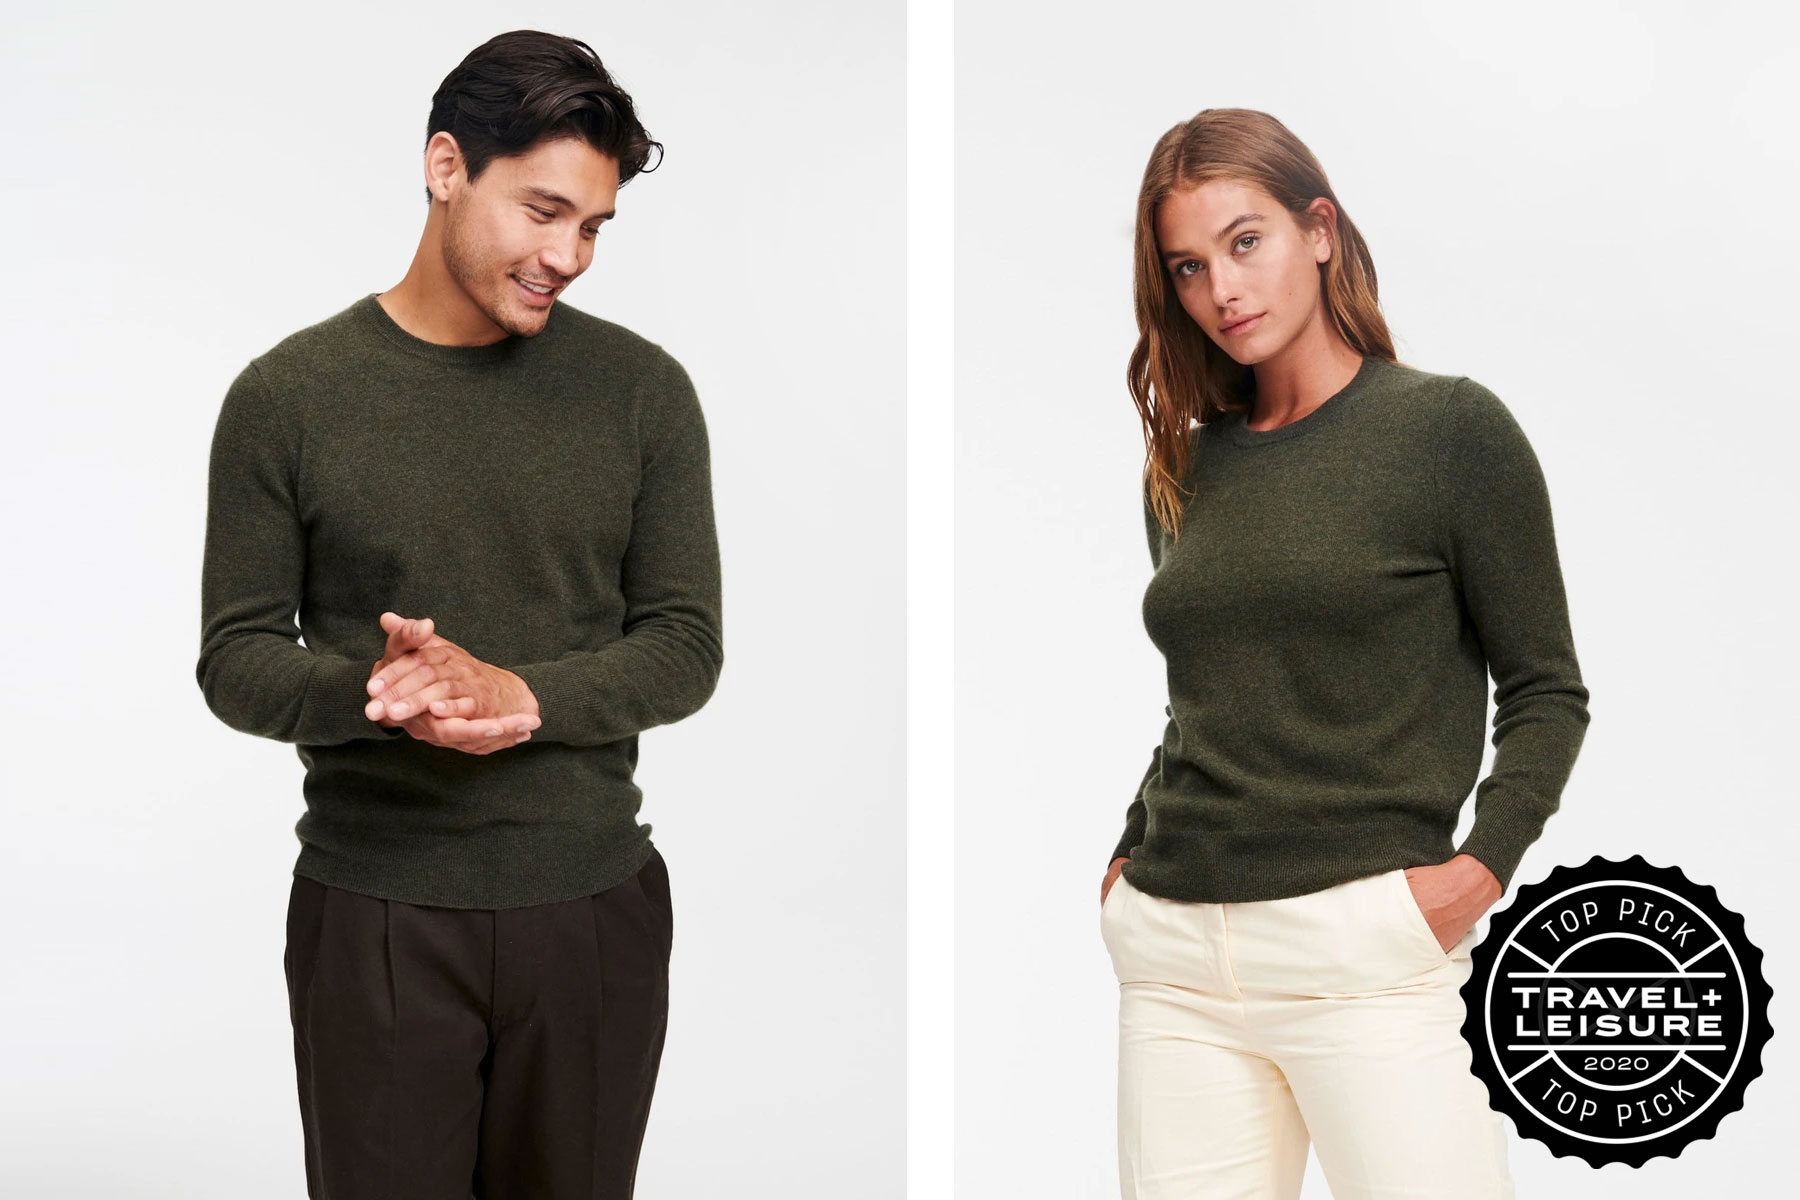 Man and woman wearing olive green cashmere sweaters